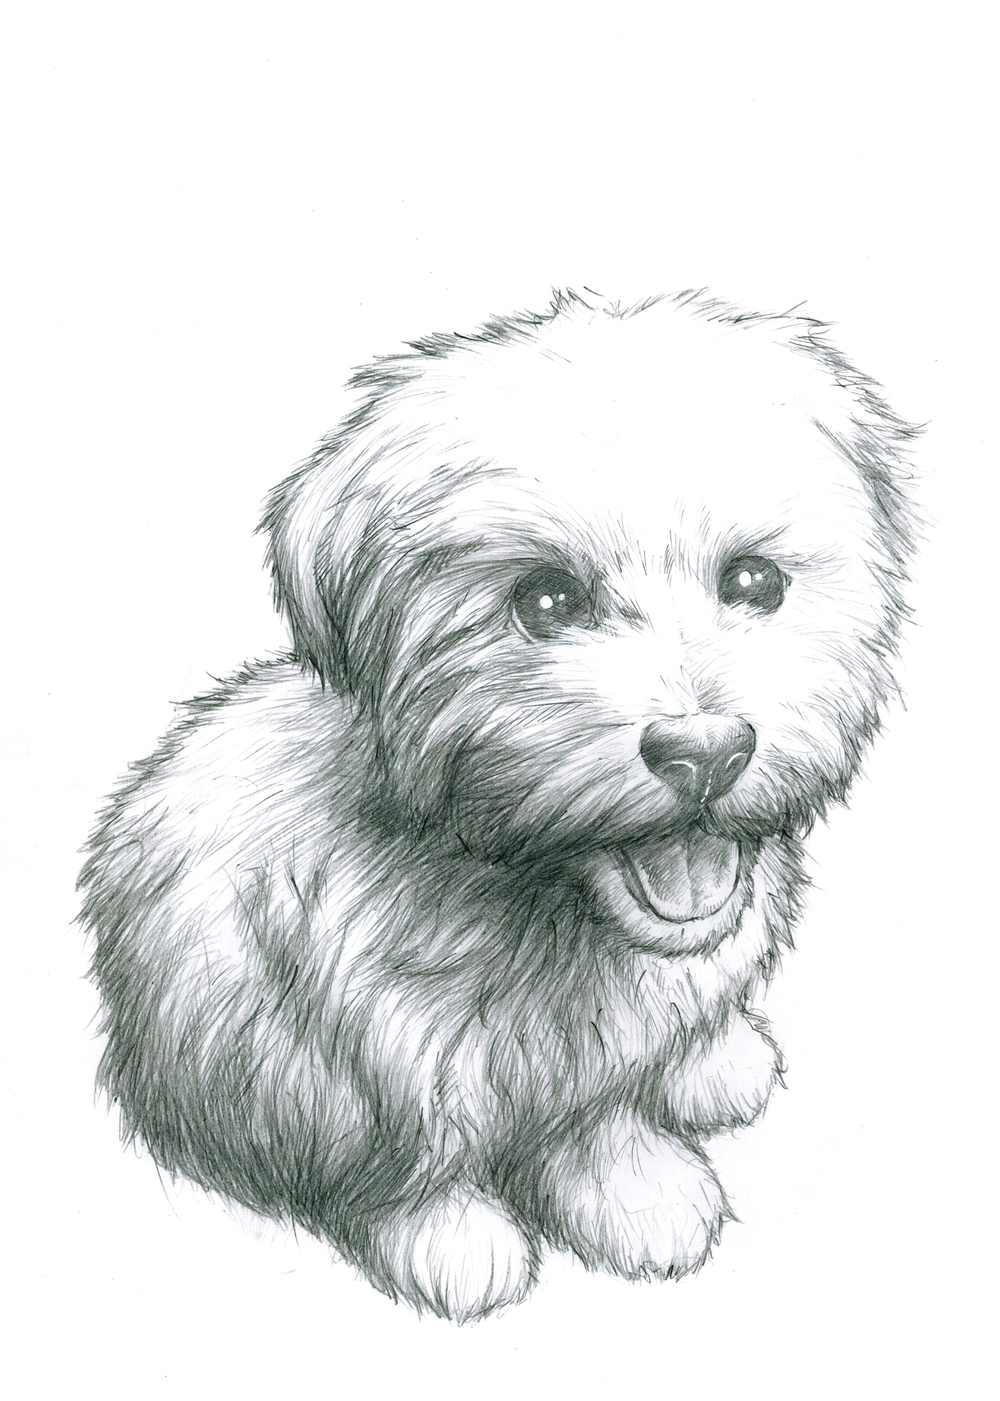 This piece was a request by a friend as a birthday present for his friend. He did not know the name of the dog so I called him Fluffernutter for the duration.